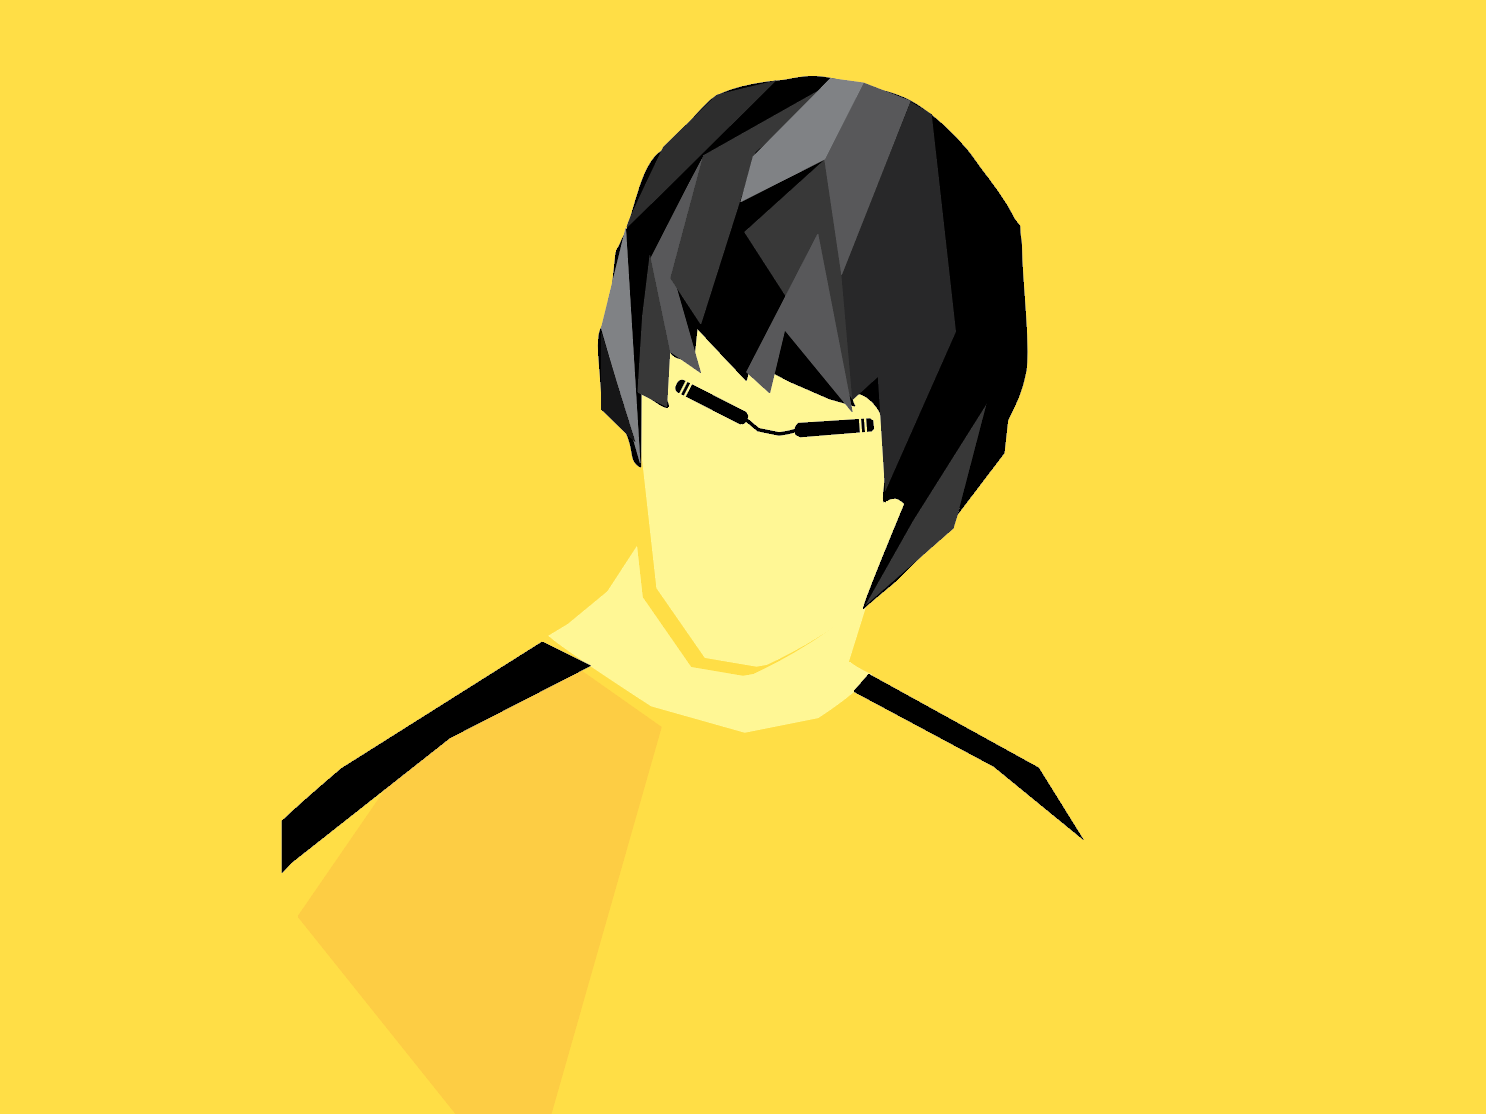 Bruce Lee - Portrait yellow polygon bruce lee flat design portrait faces icon character illustration 2d minimal vector graphic  design